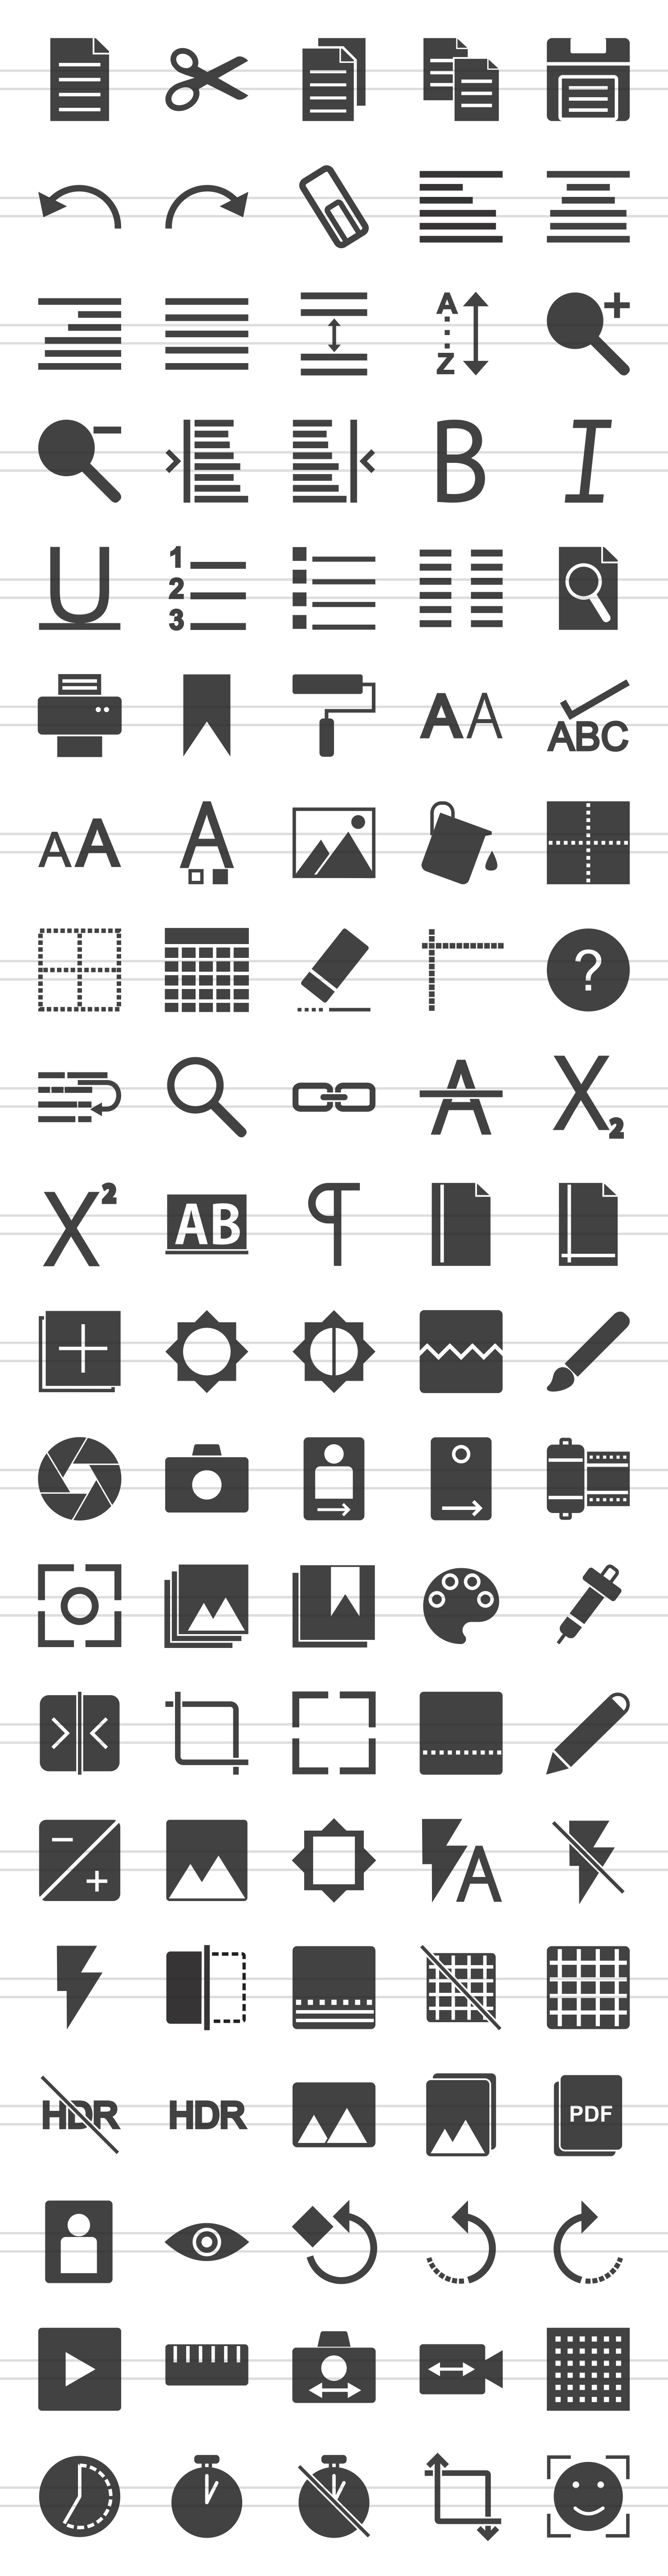 100 Photo & Text Editing Glyph Icons example image 2